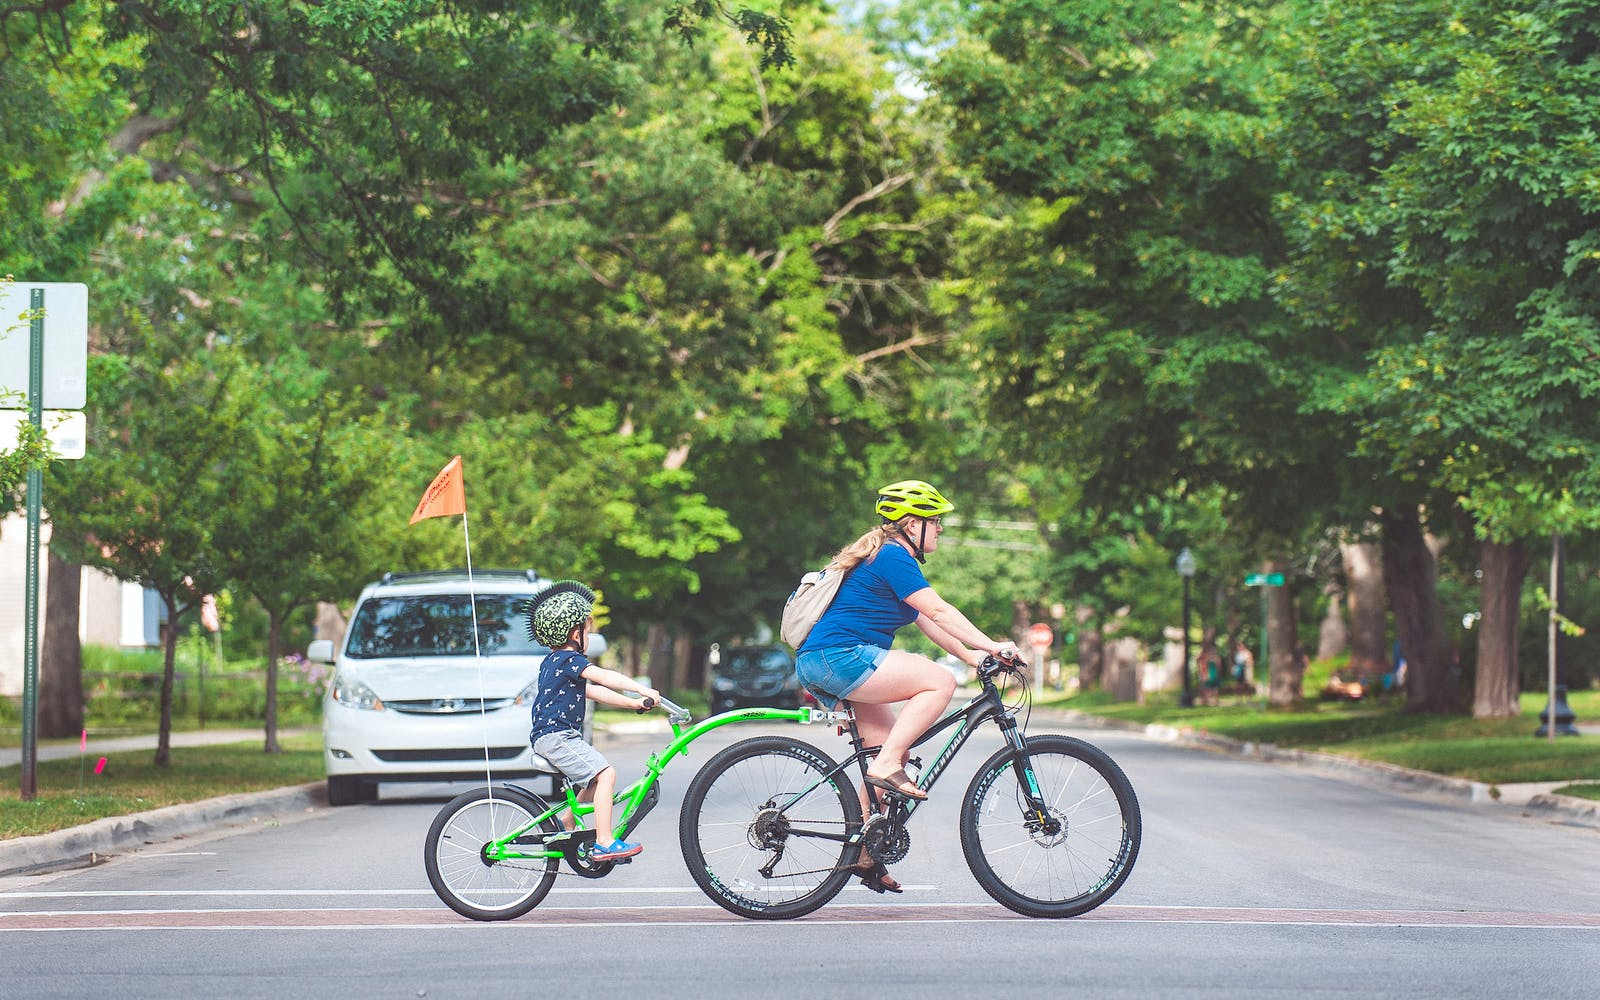 A female bicyclist and child in Traverse City, Michigan. Photo by Gary Howe.